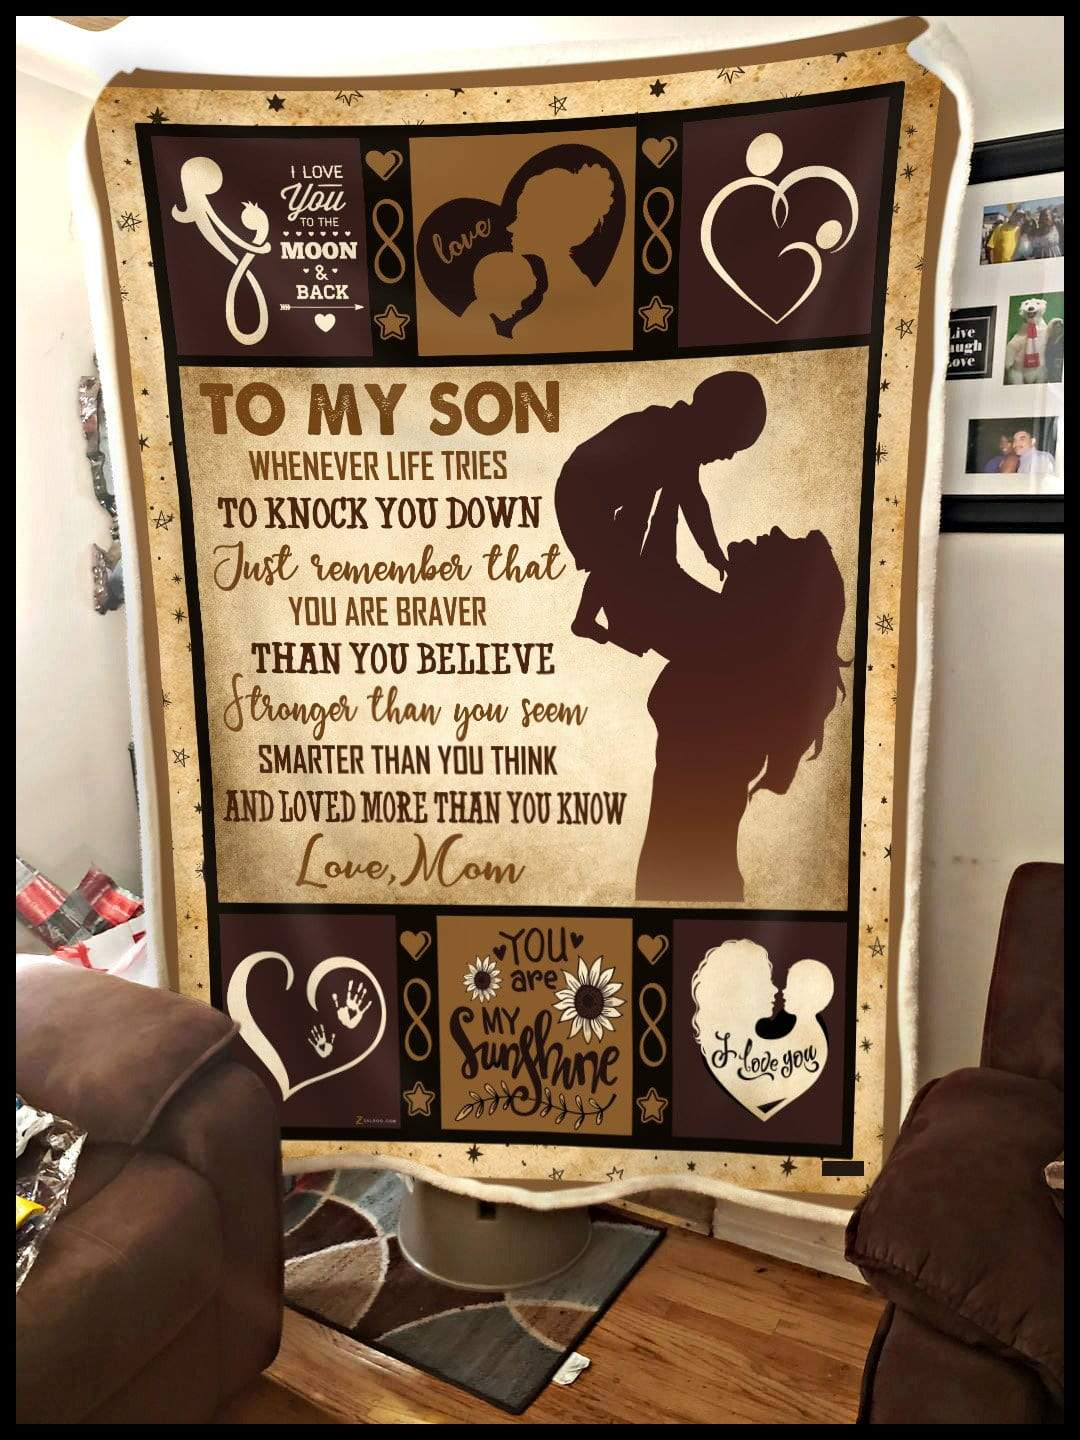 To my Son - Youre love more than you know Quilt Blanket EP2680